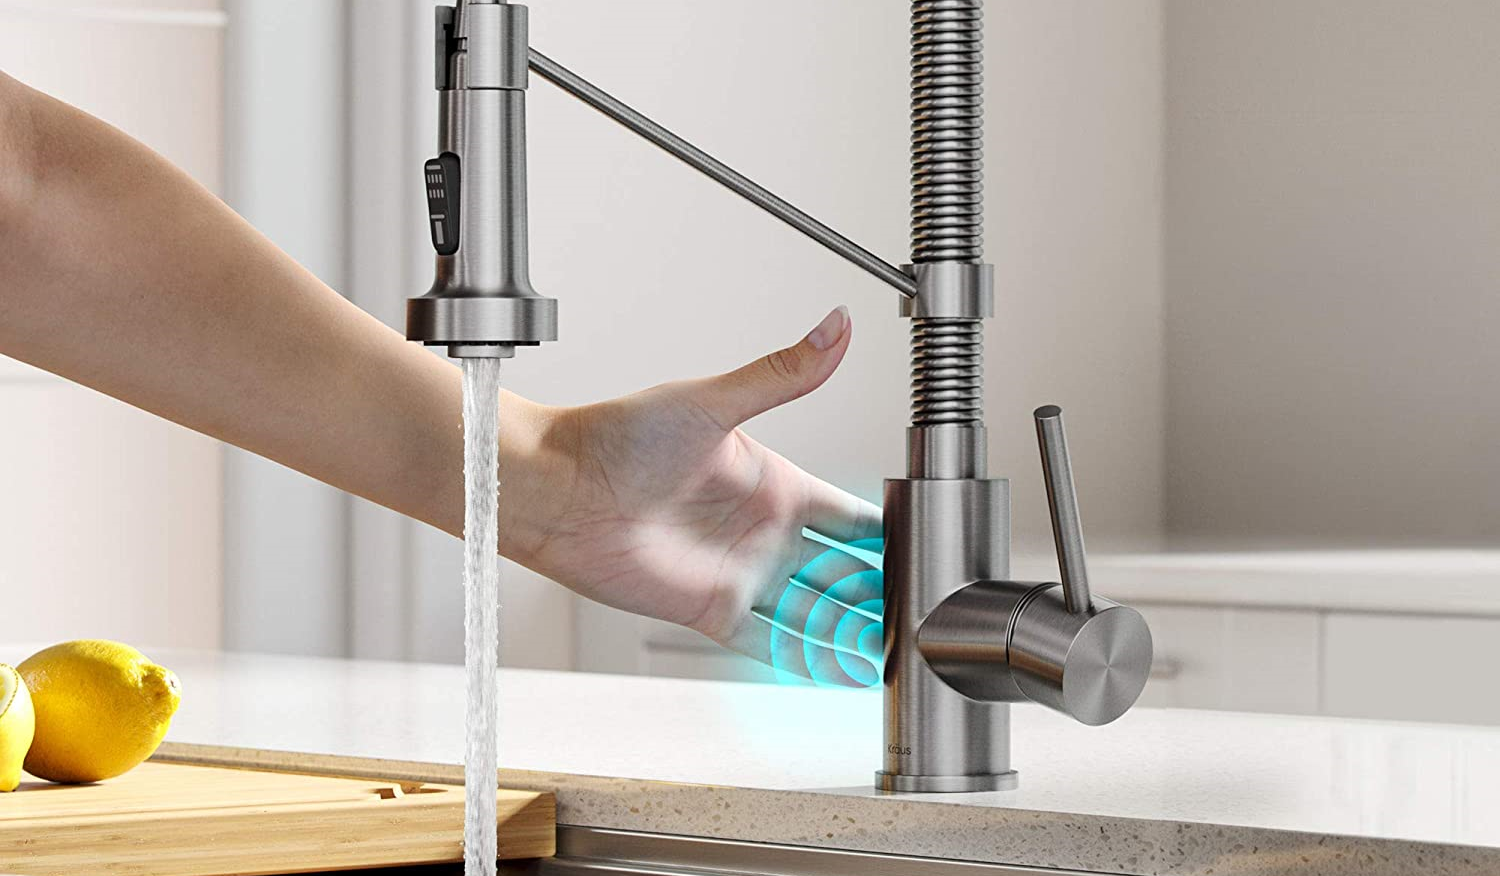 Touch activation smart faucets